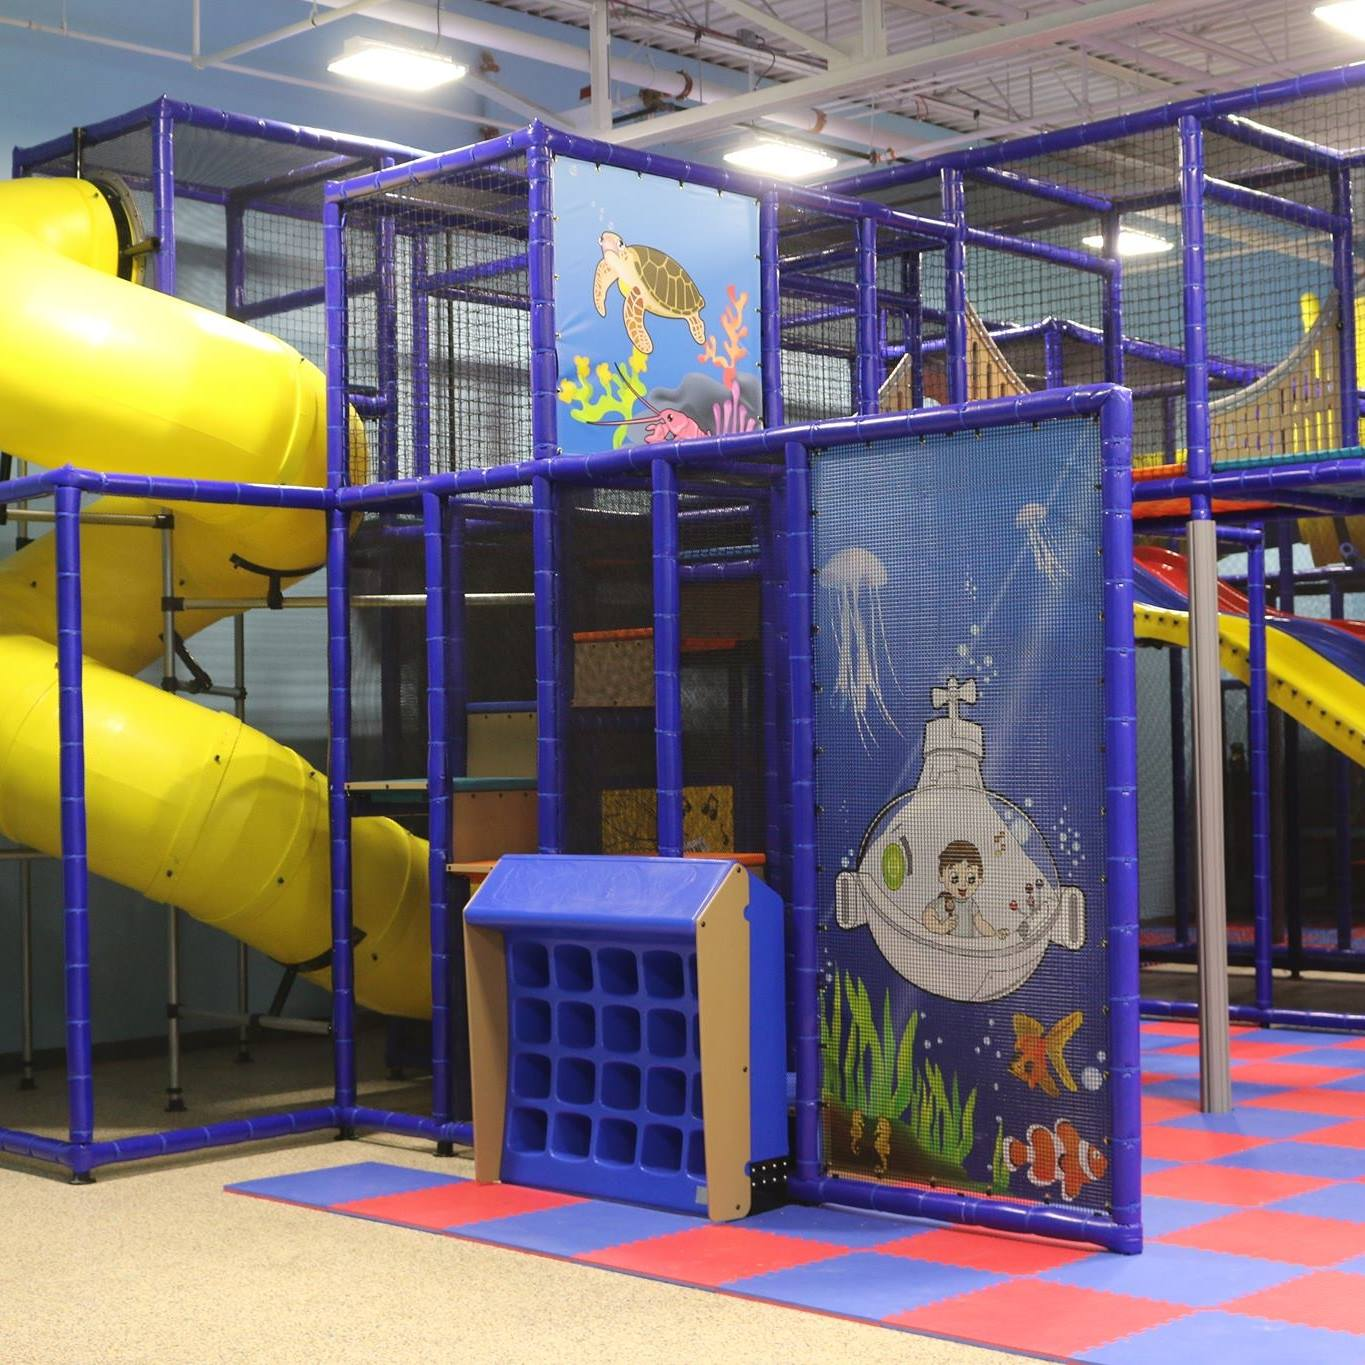 Under The Sea Playground: Gift Card for Indoor Play